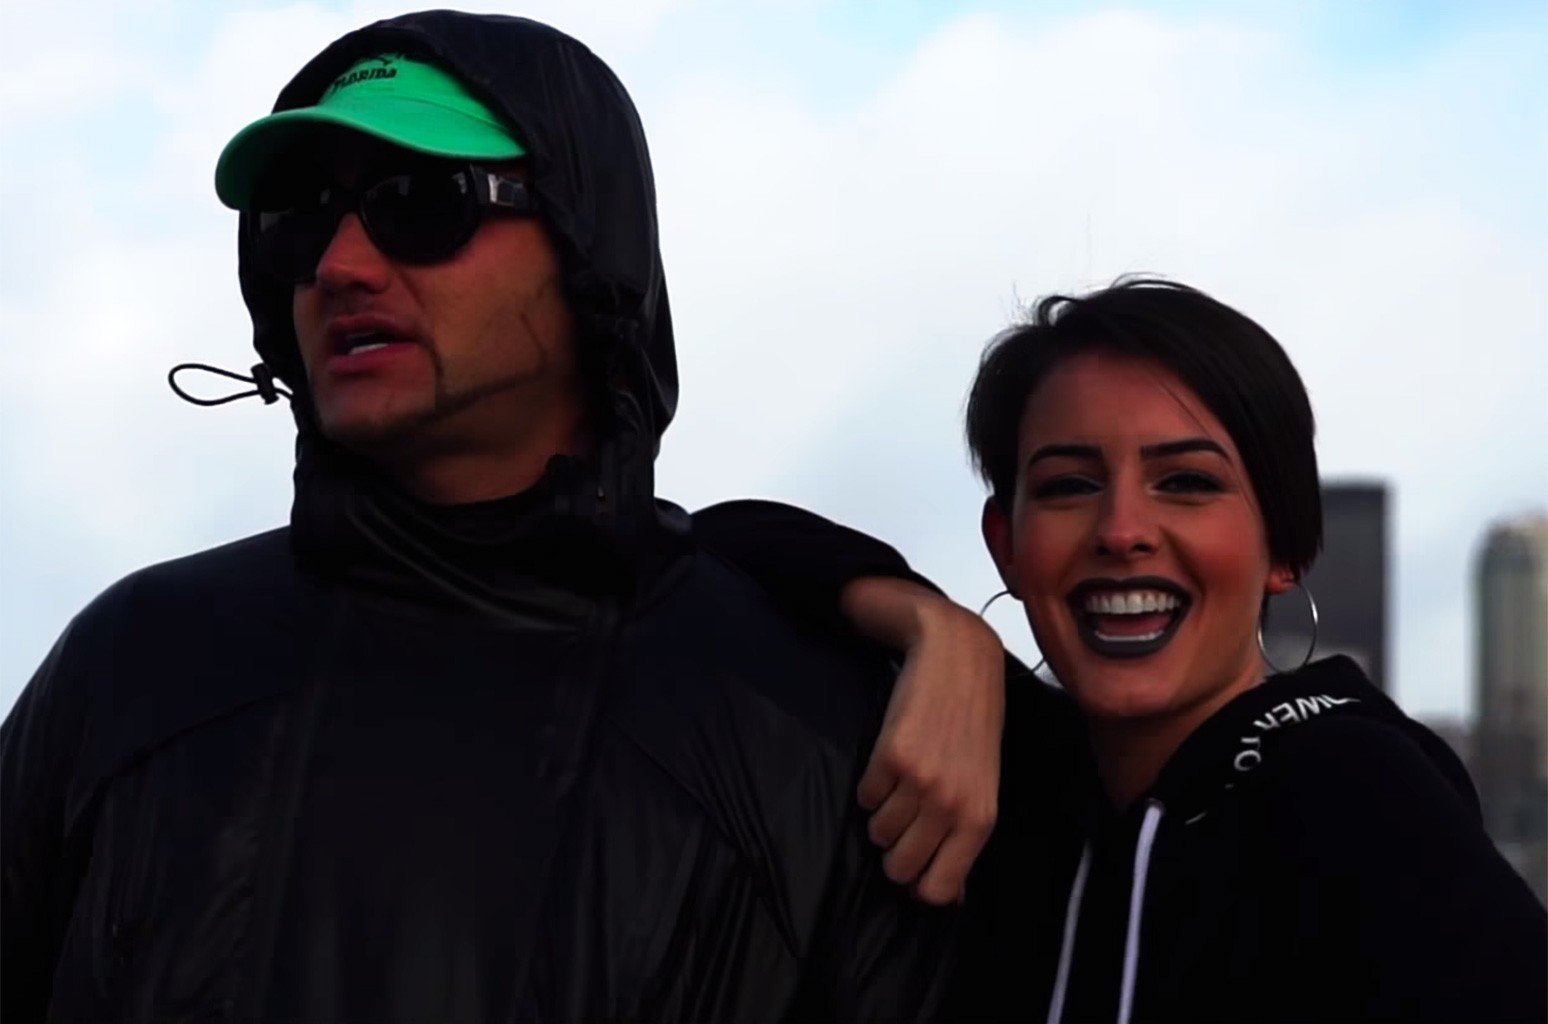 """RiFF RAFF FT LiSA CiMORELLi - """"HiT ME UP"""" PRESENTED BY DJ AFTERTHOUGHT"""